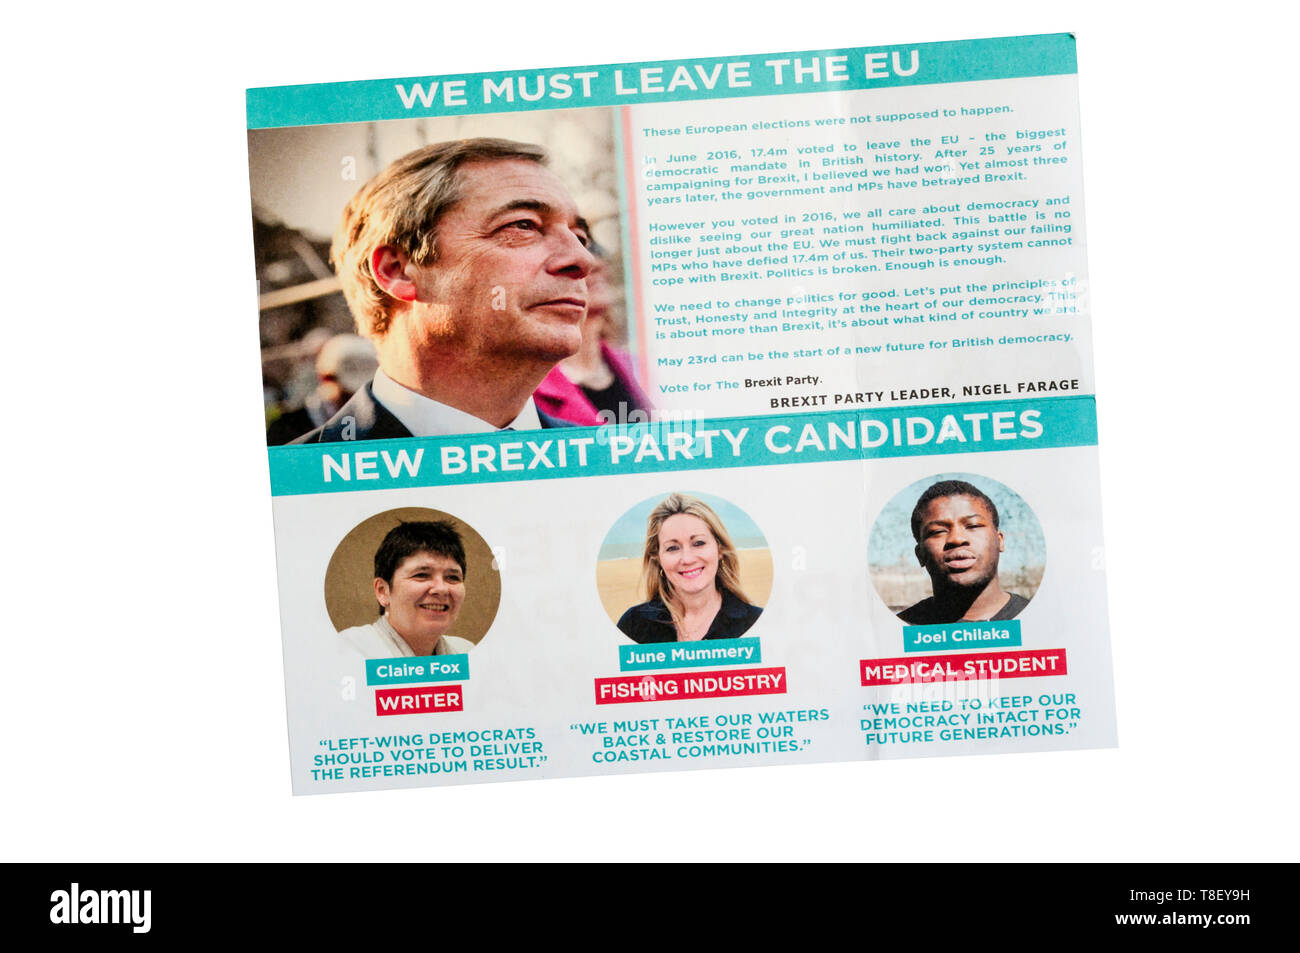 European election leaflet 2019 from the Brexit Party led by Nigel Farage. Stock Photo